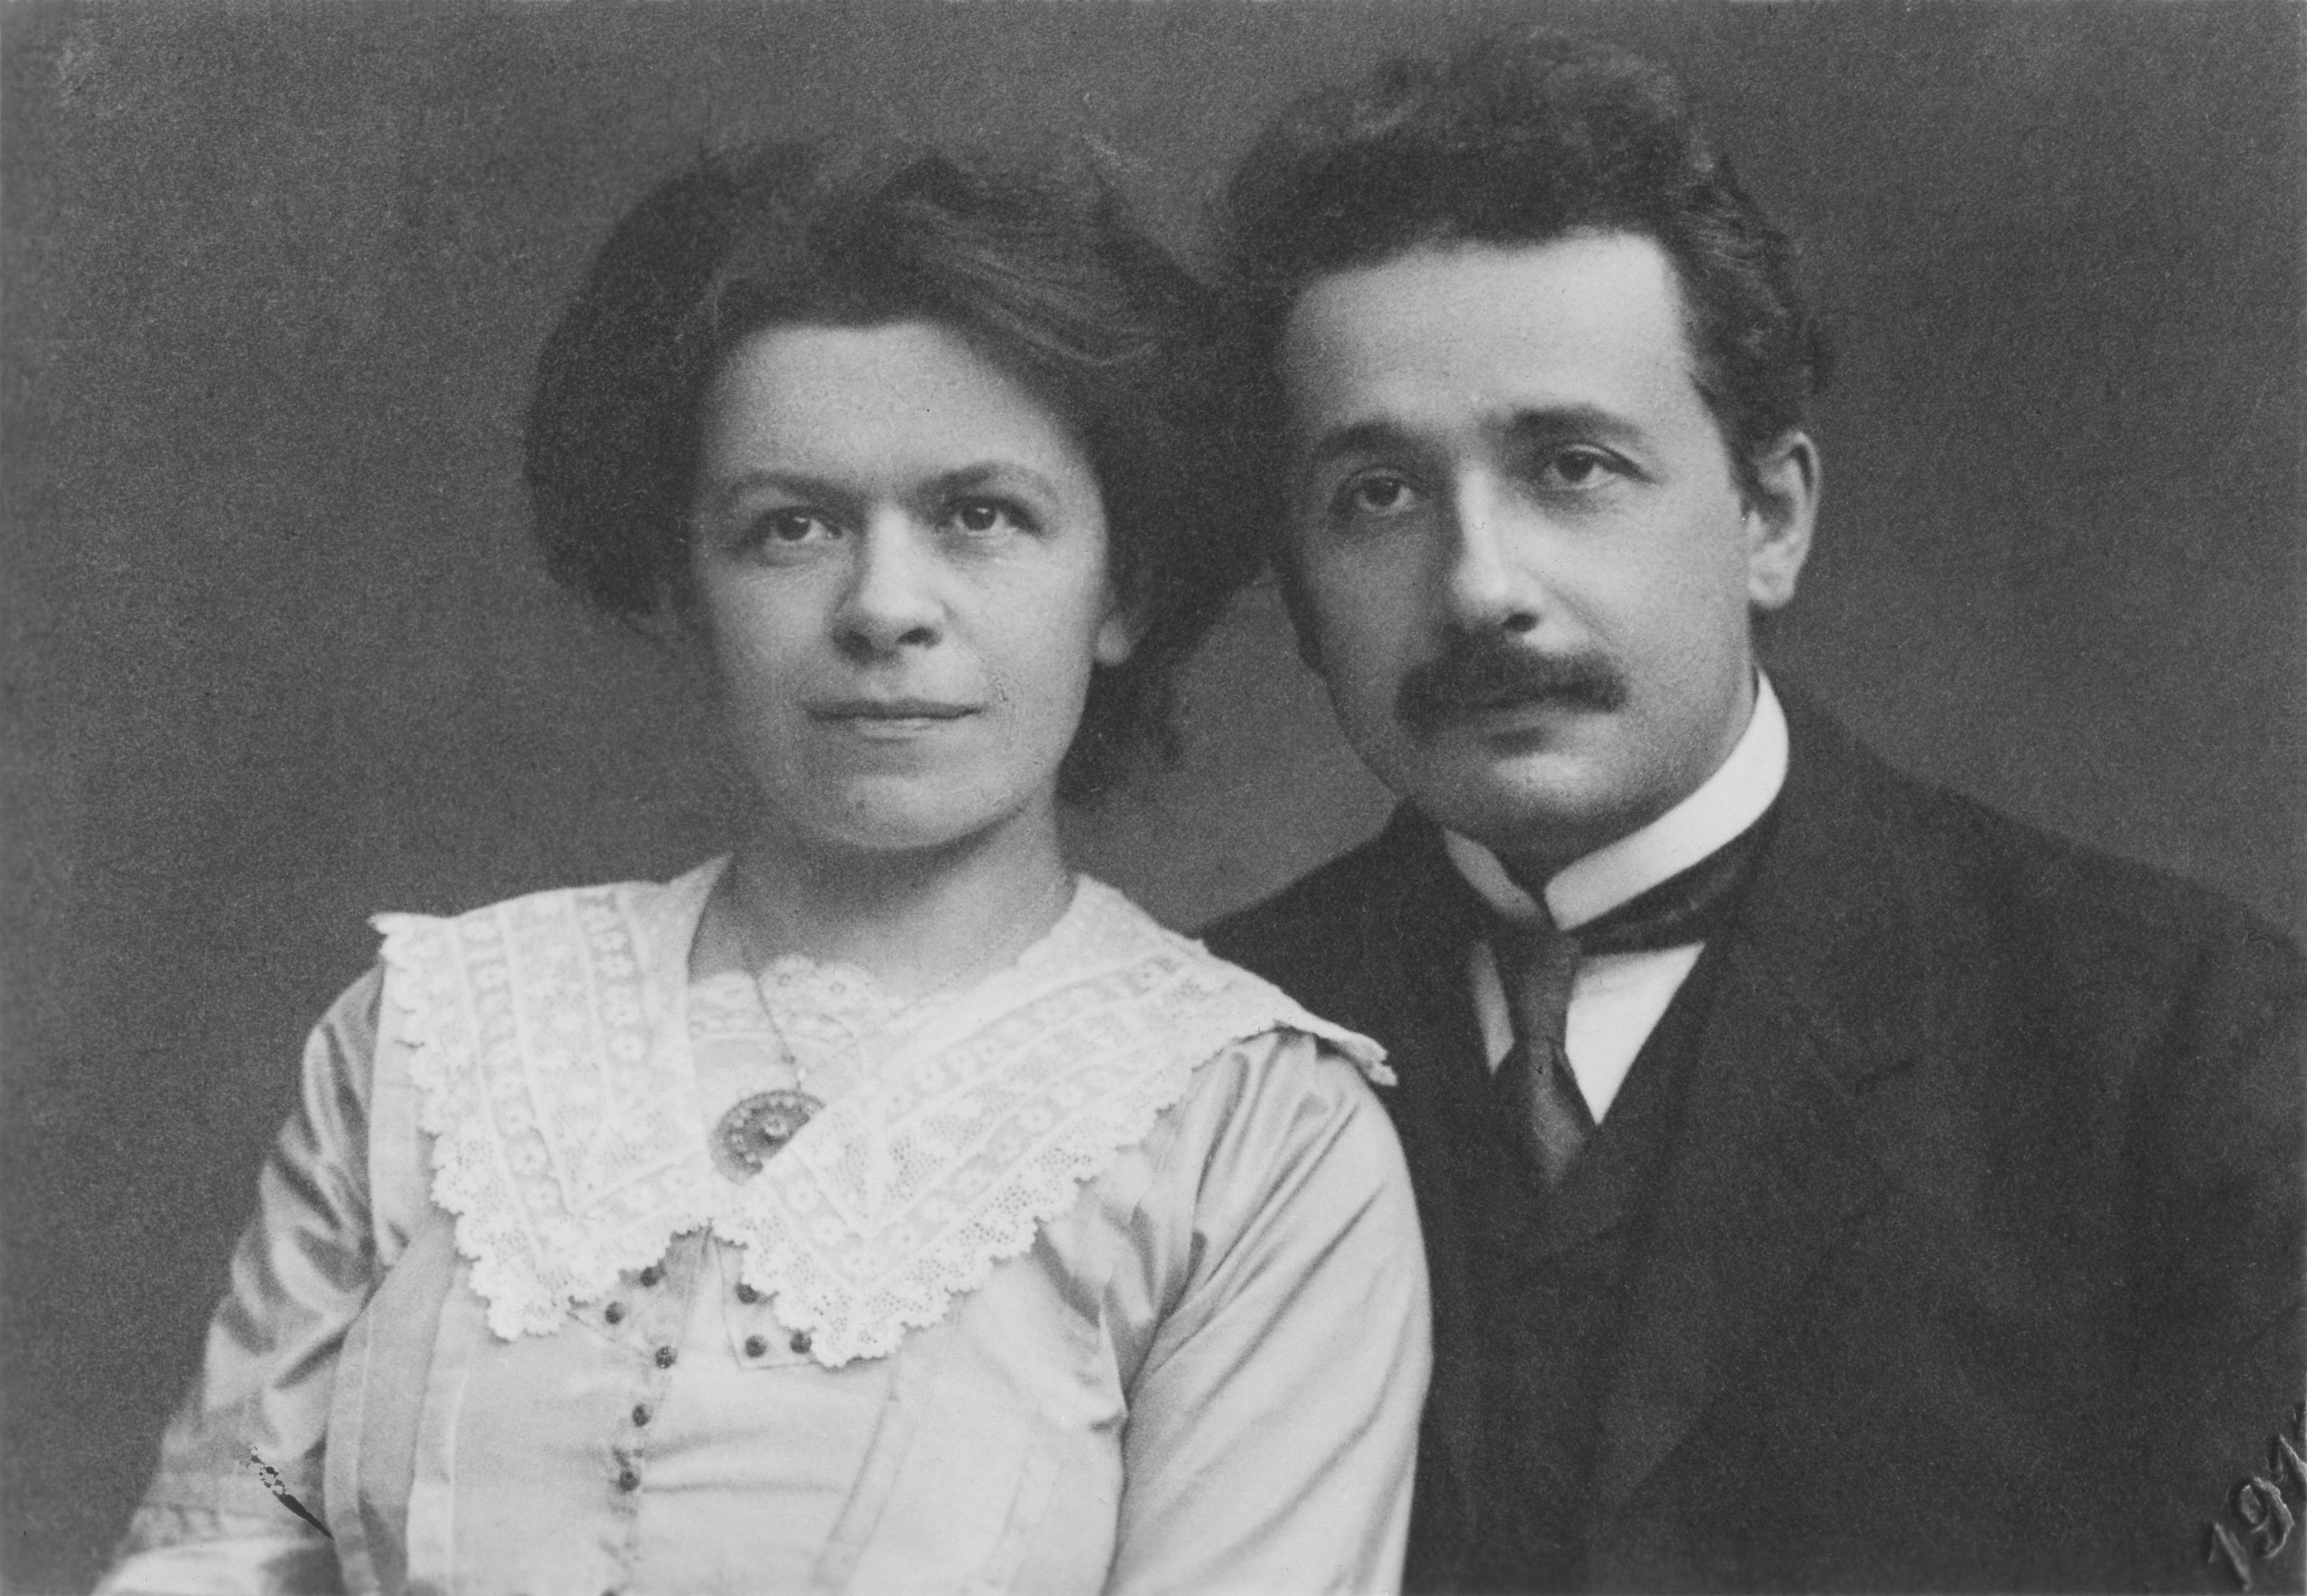 Albert and Mileva Einstein